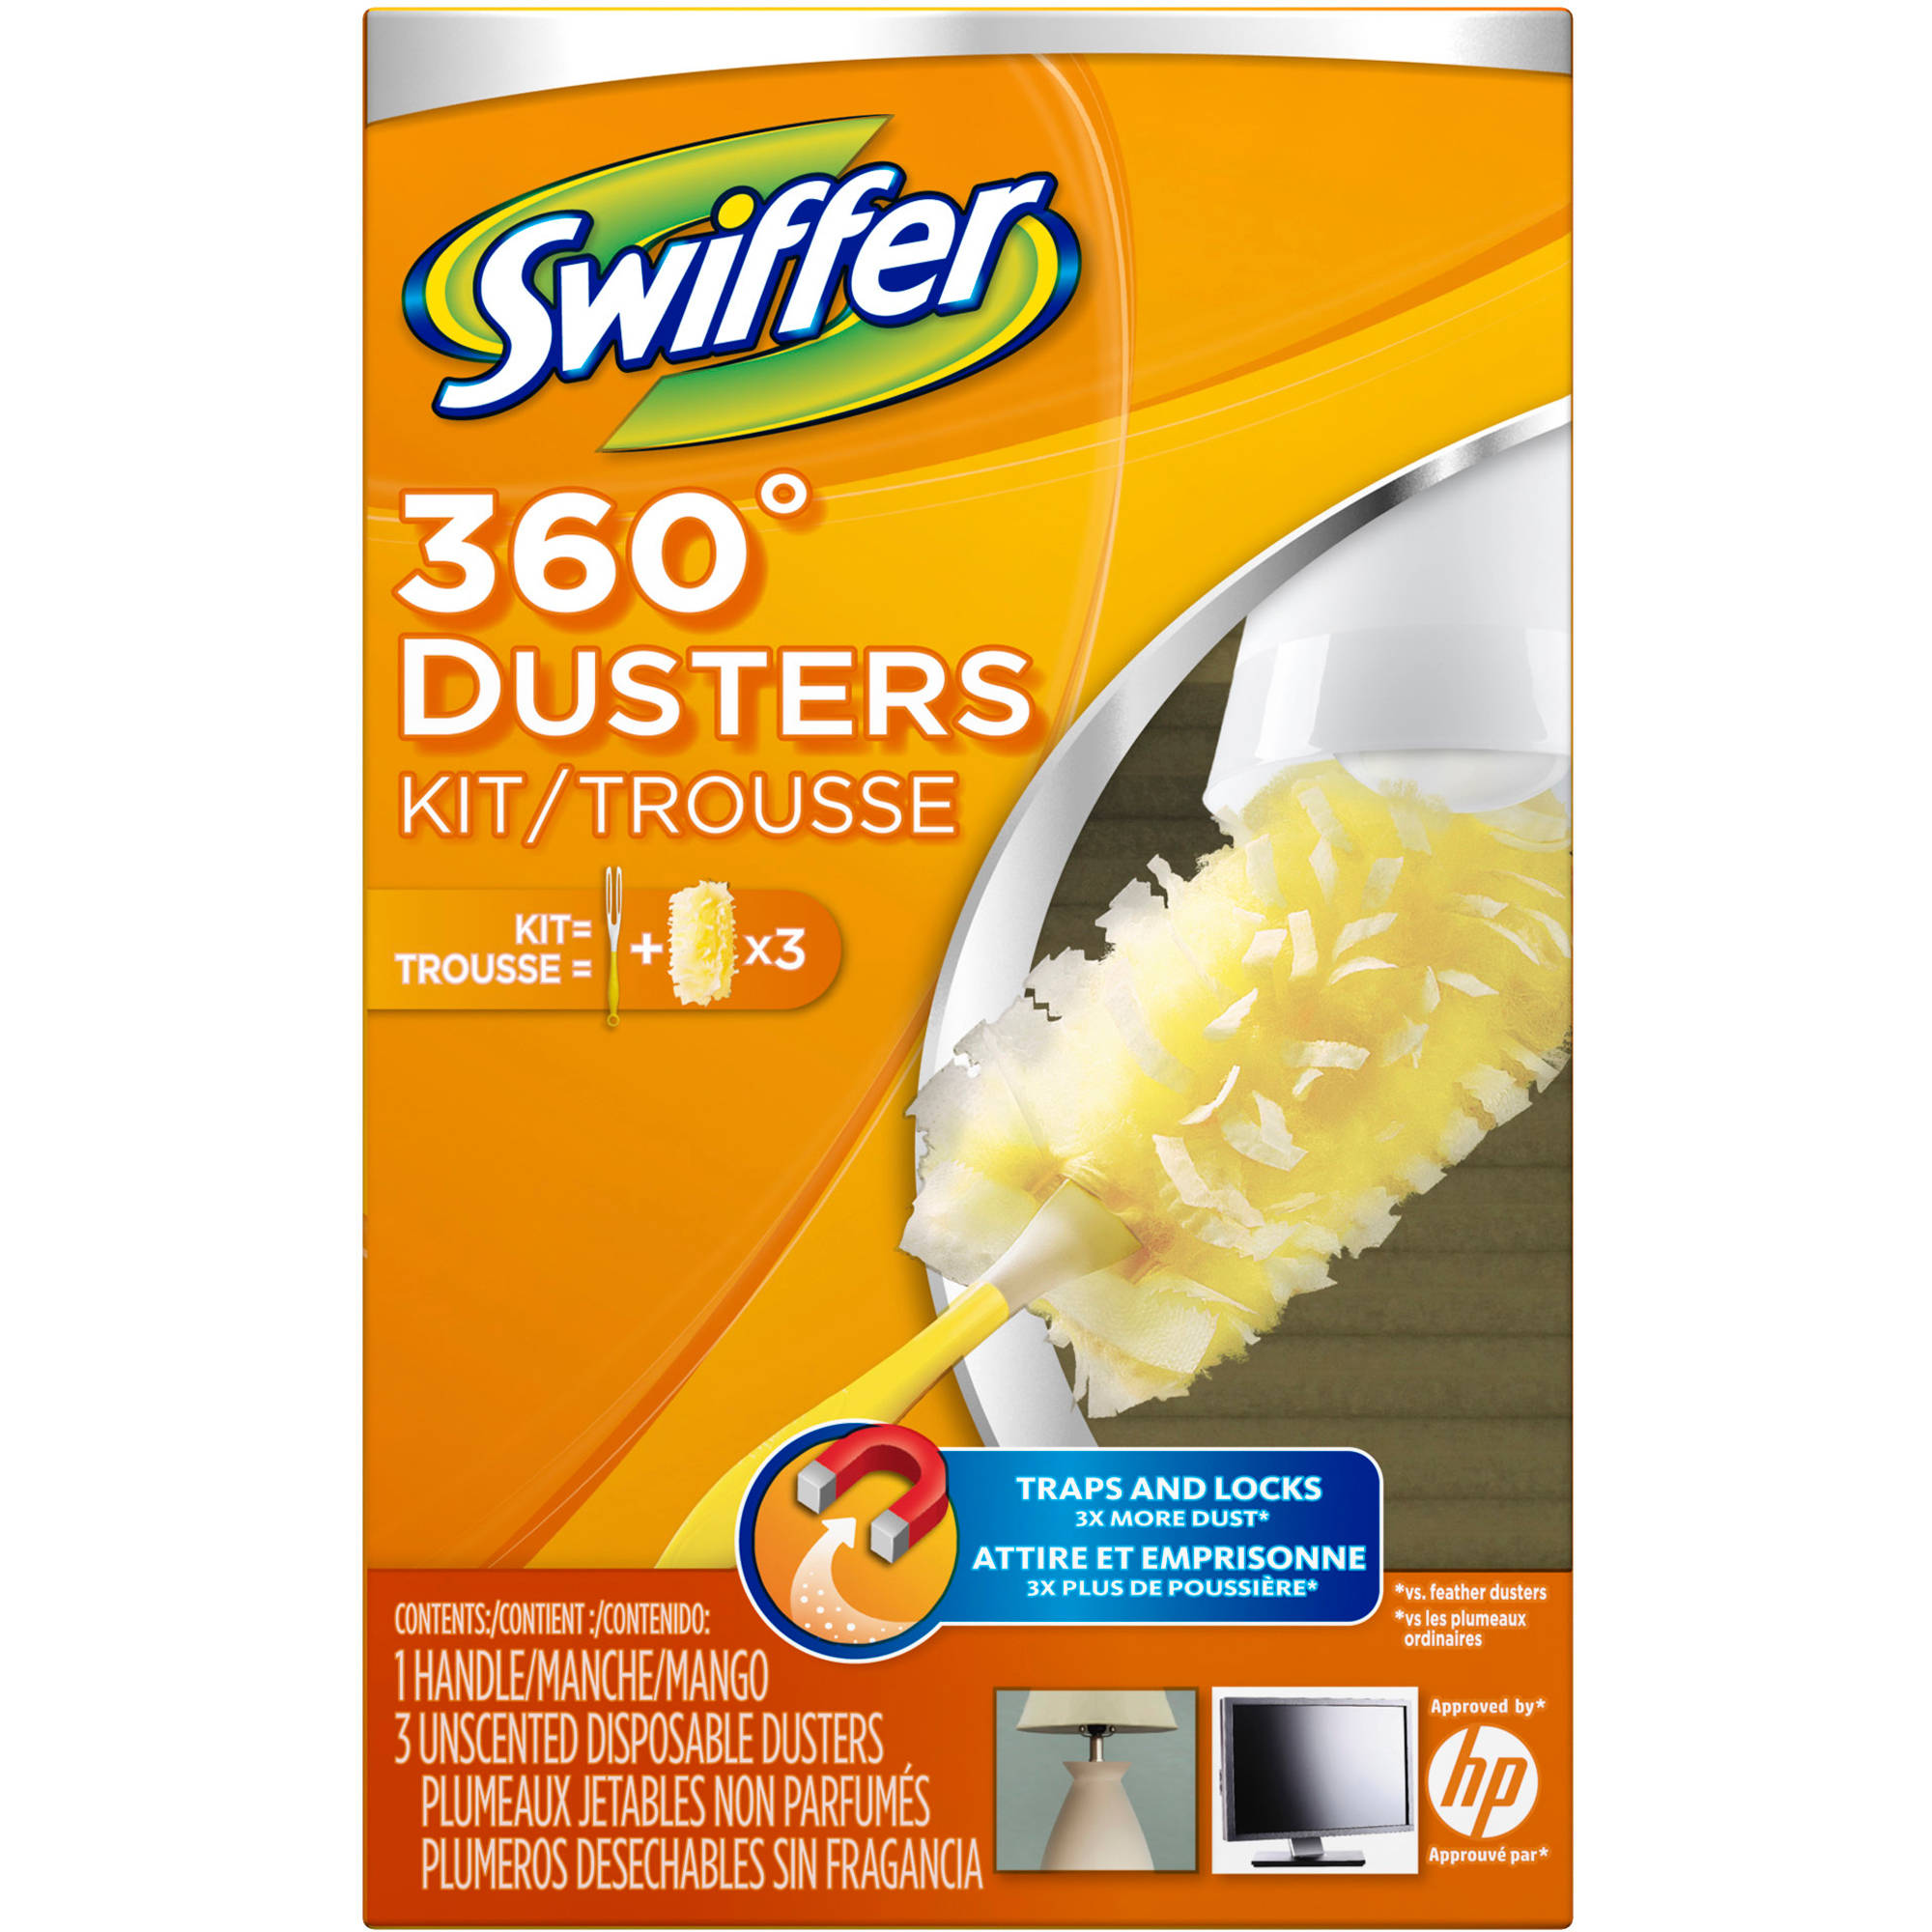 Swiffer 360 Dusters Starter Kit, 4ct